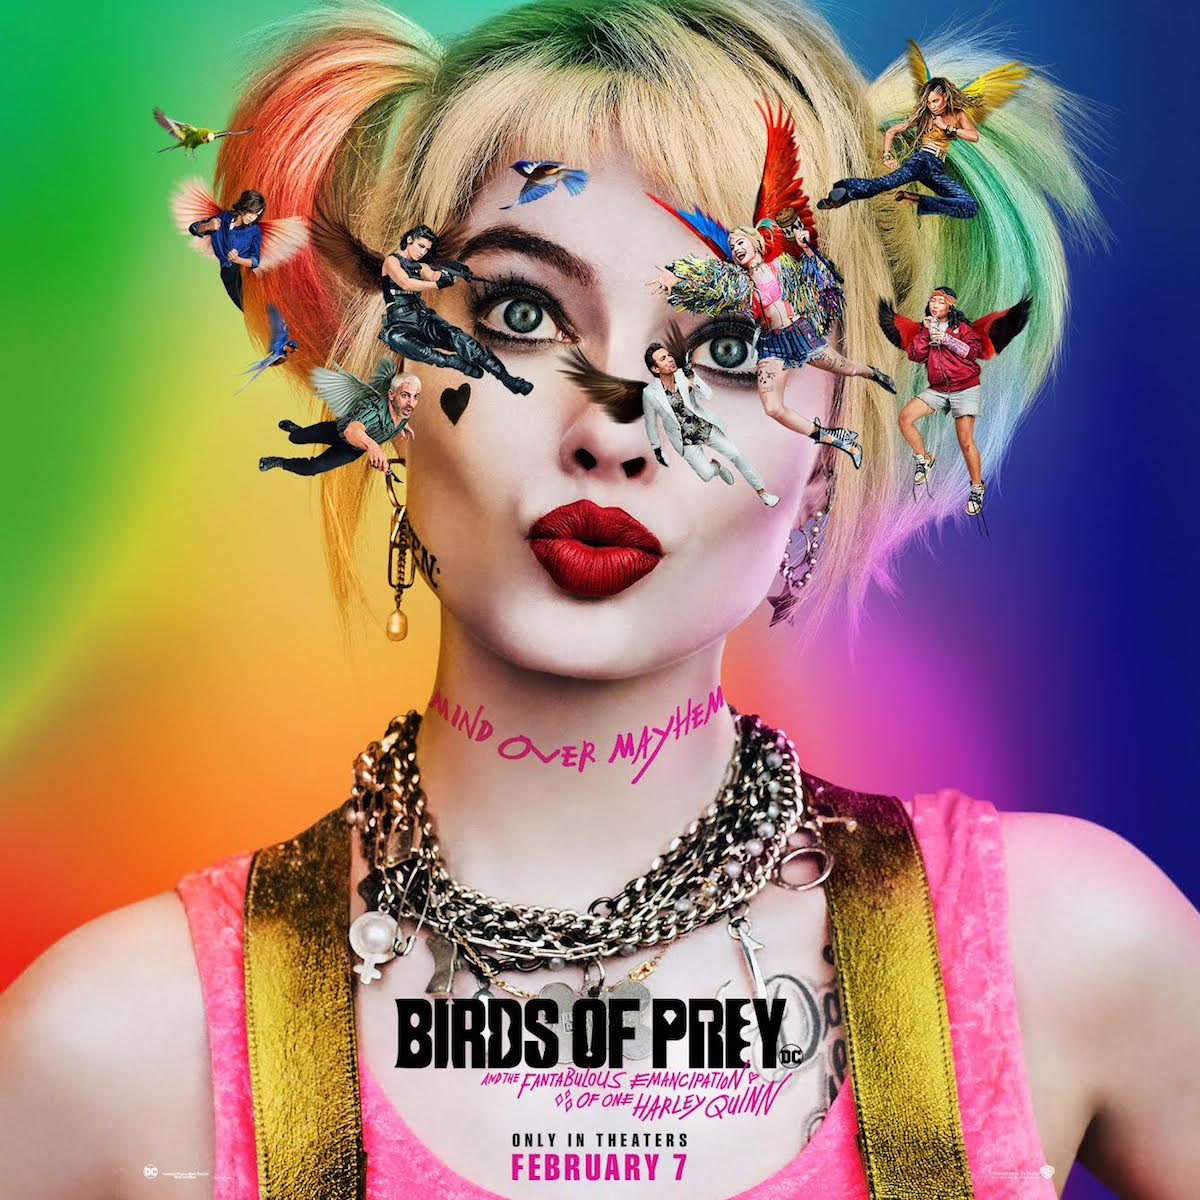 The Birds of Prey poster